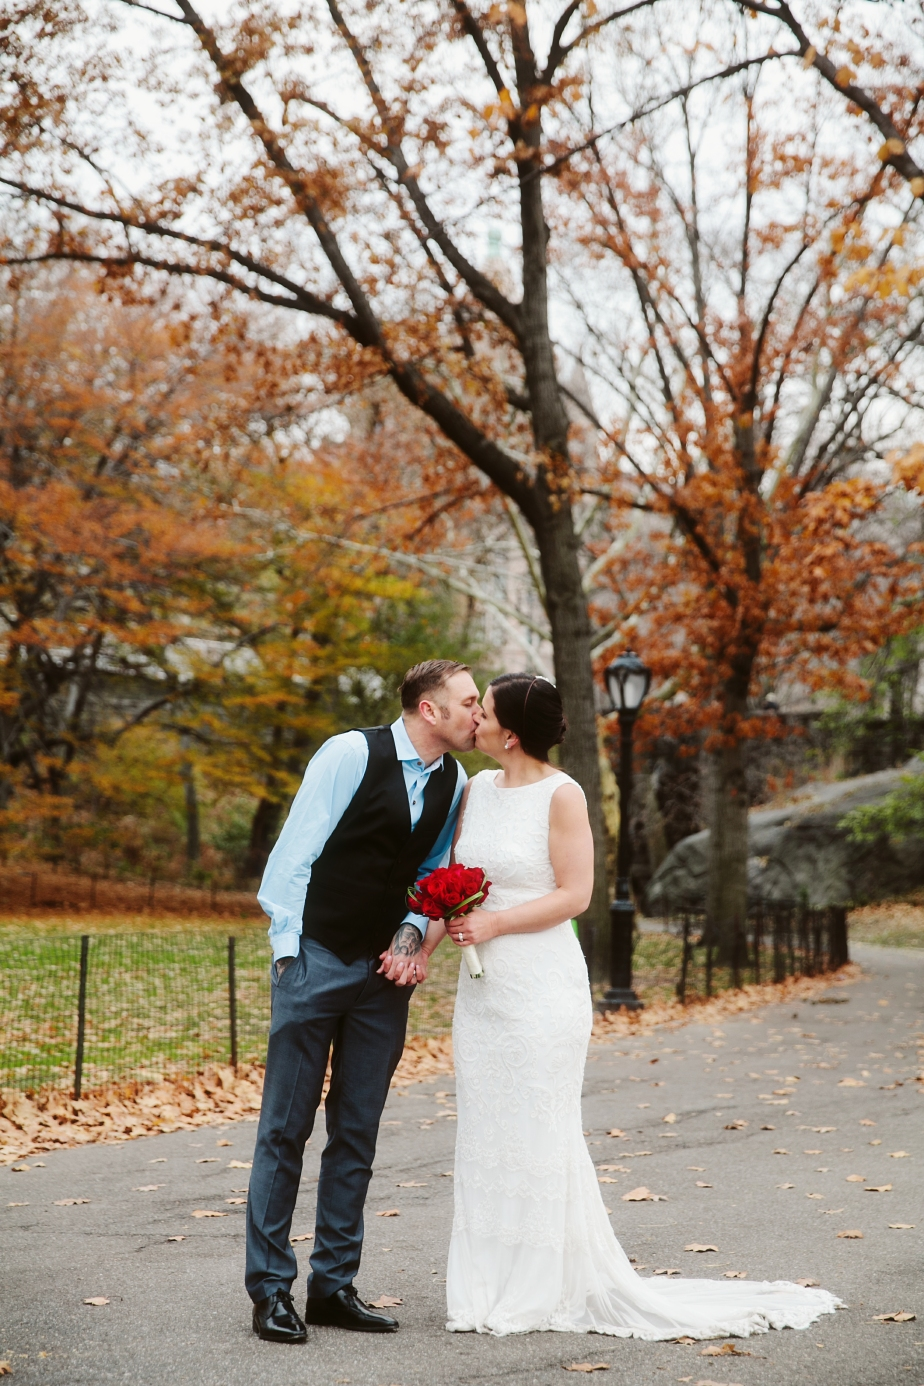 JD_centralpark_wedding-212